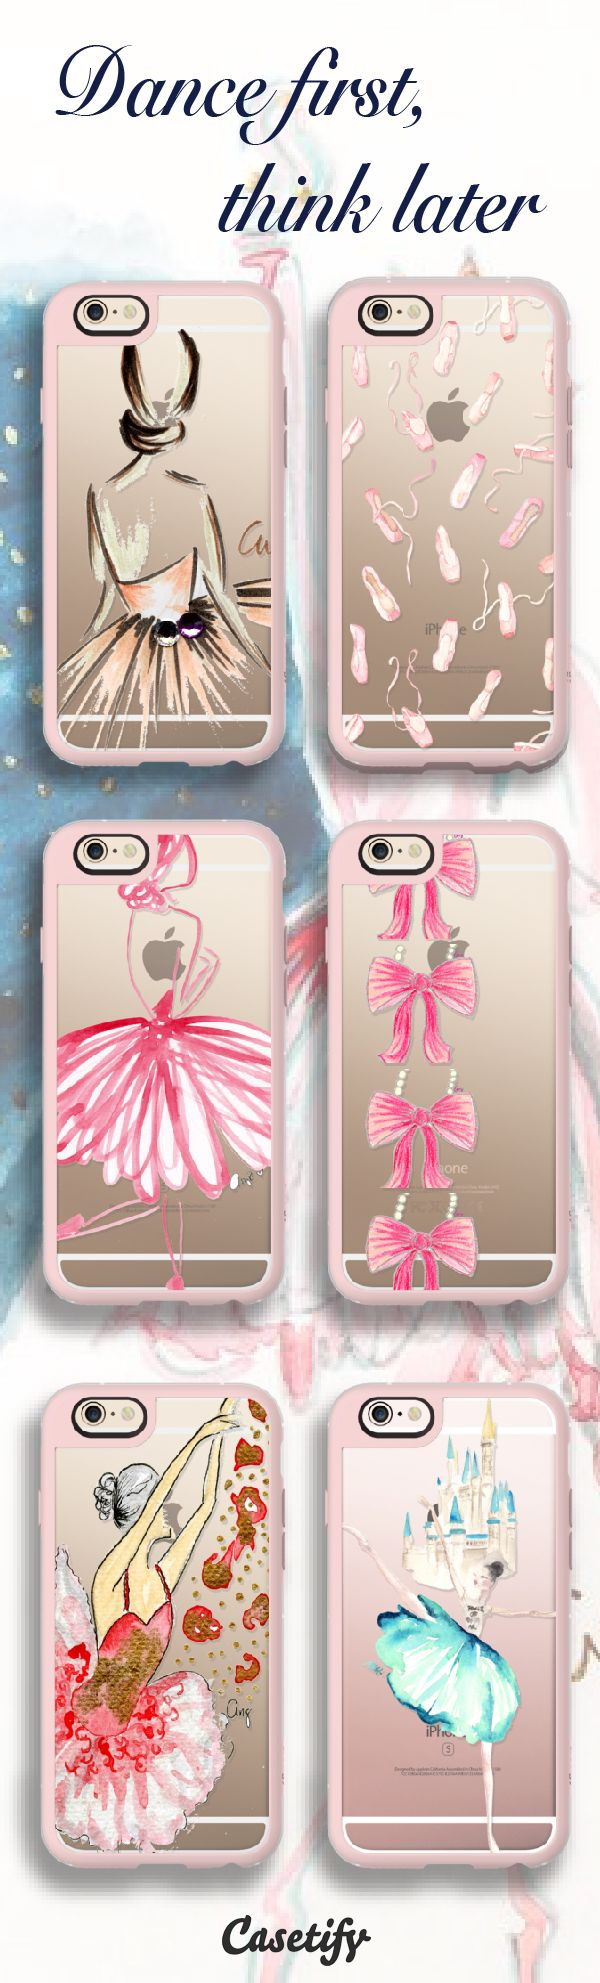 Top 6 ballerina iPhone 6s protective phone cases | Click through to see more ballet iphone phone case ideas >>> https://www.casetify.com/artworks/a4kEQLtfHK | @casetify